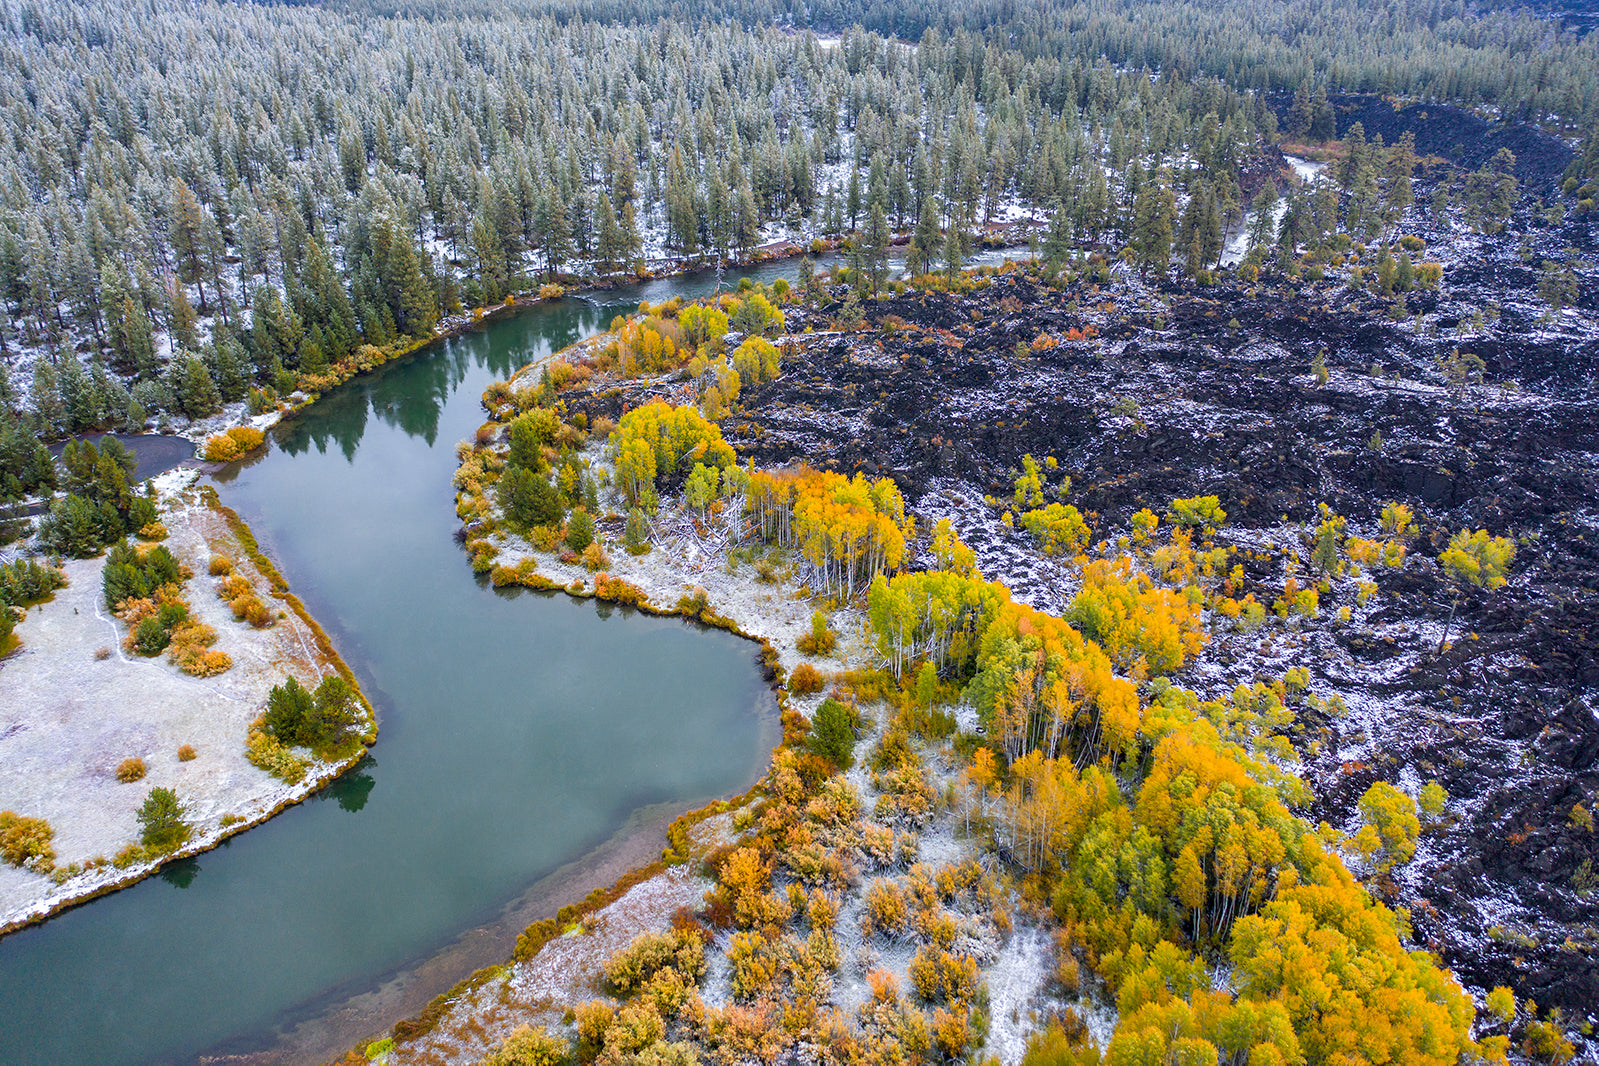 DESCHUTES RIVER FALL COLOR